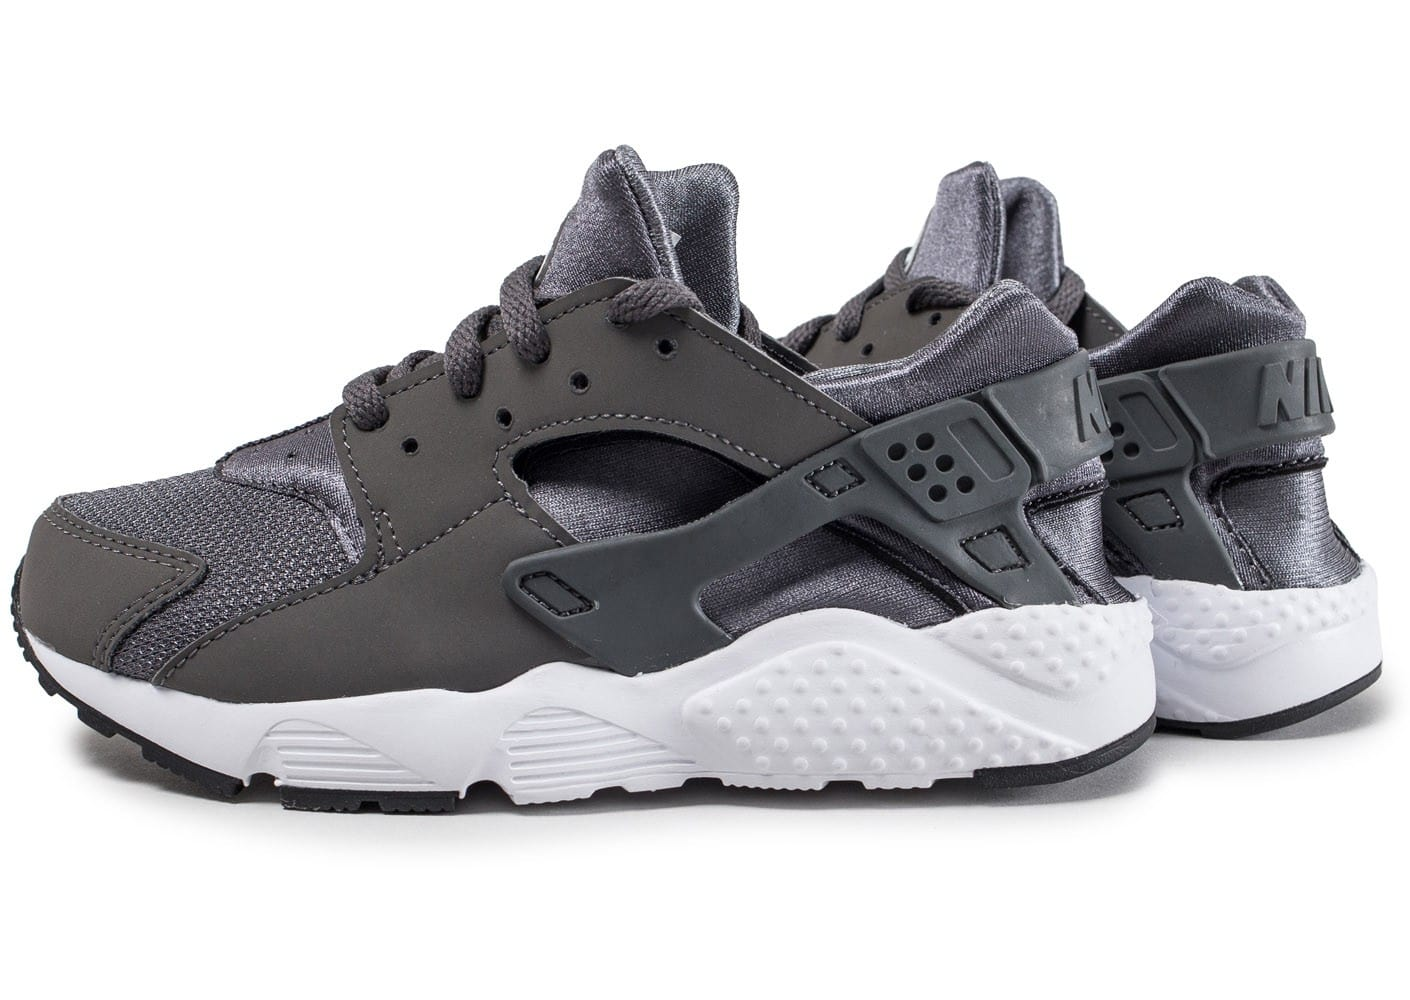 nike air huarache run enfant anthracite chaussures enfant chausport. Black Bedroom Furniture Sets. Home Design Ideas